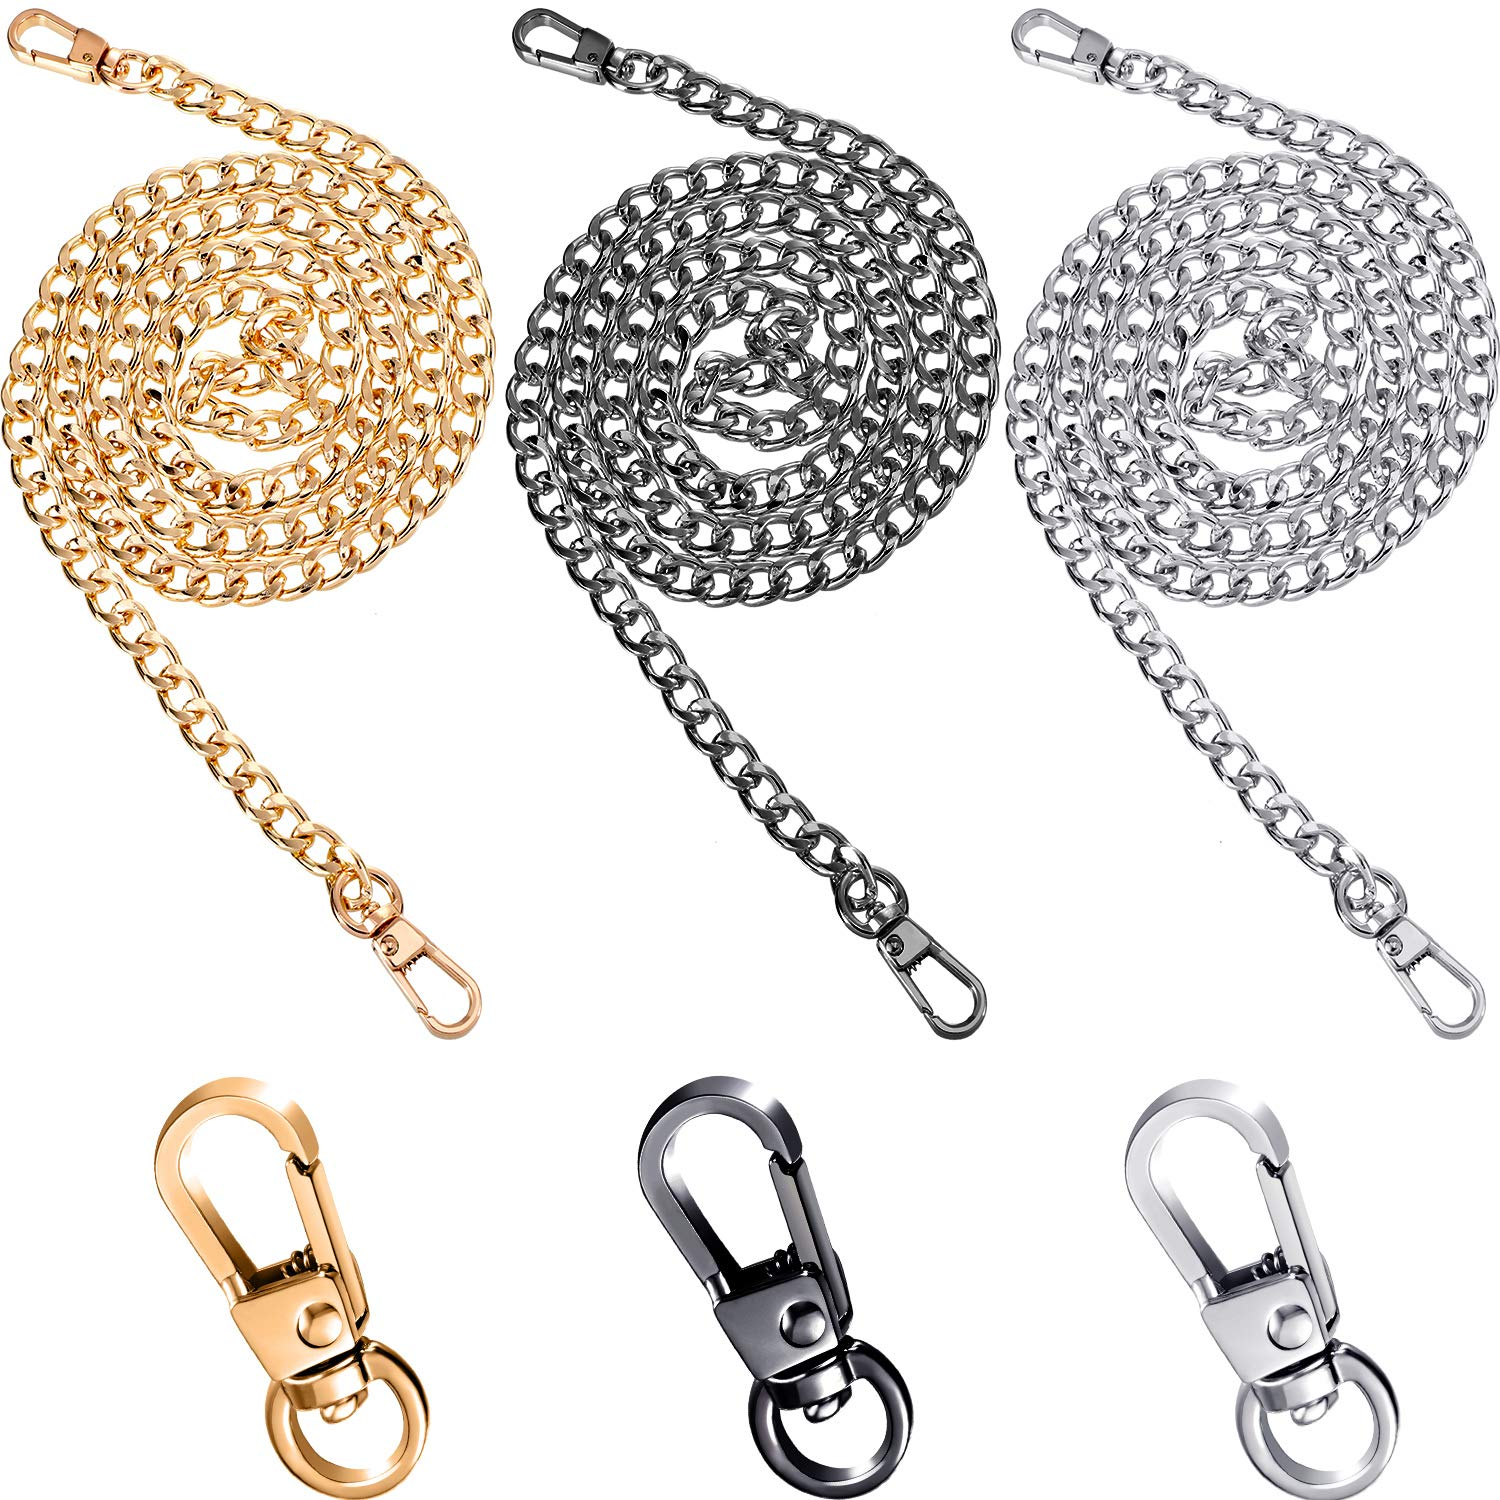 3 Colors Zonon Bag Chain Strap Handbag Replacement Chains Iron Chain Strap and Replacement Clasps for Ladys Bag DIY and Maintenance